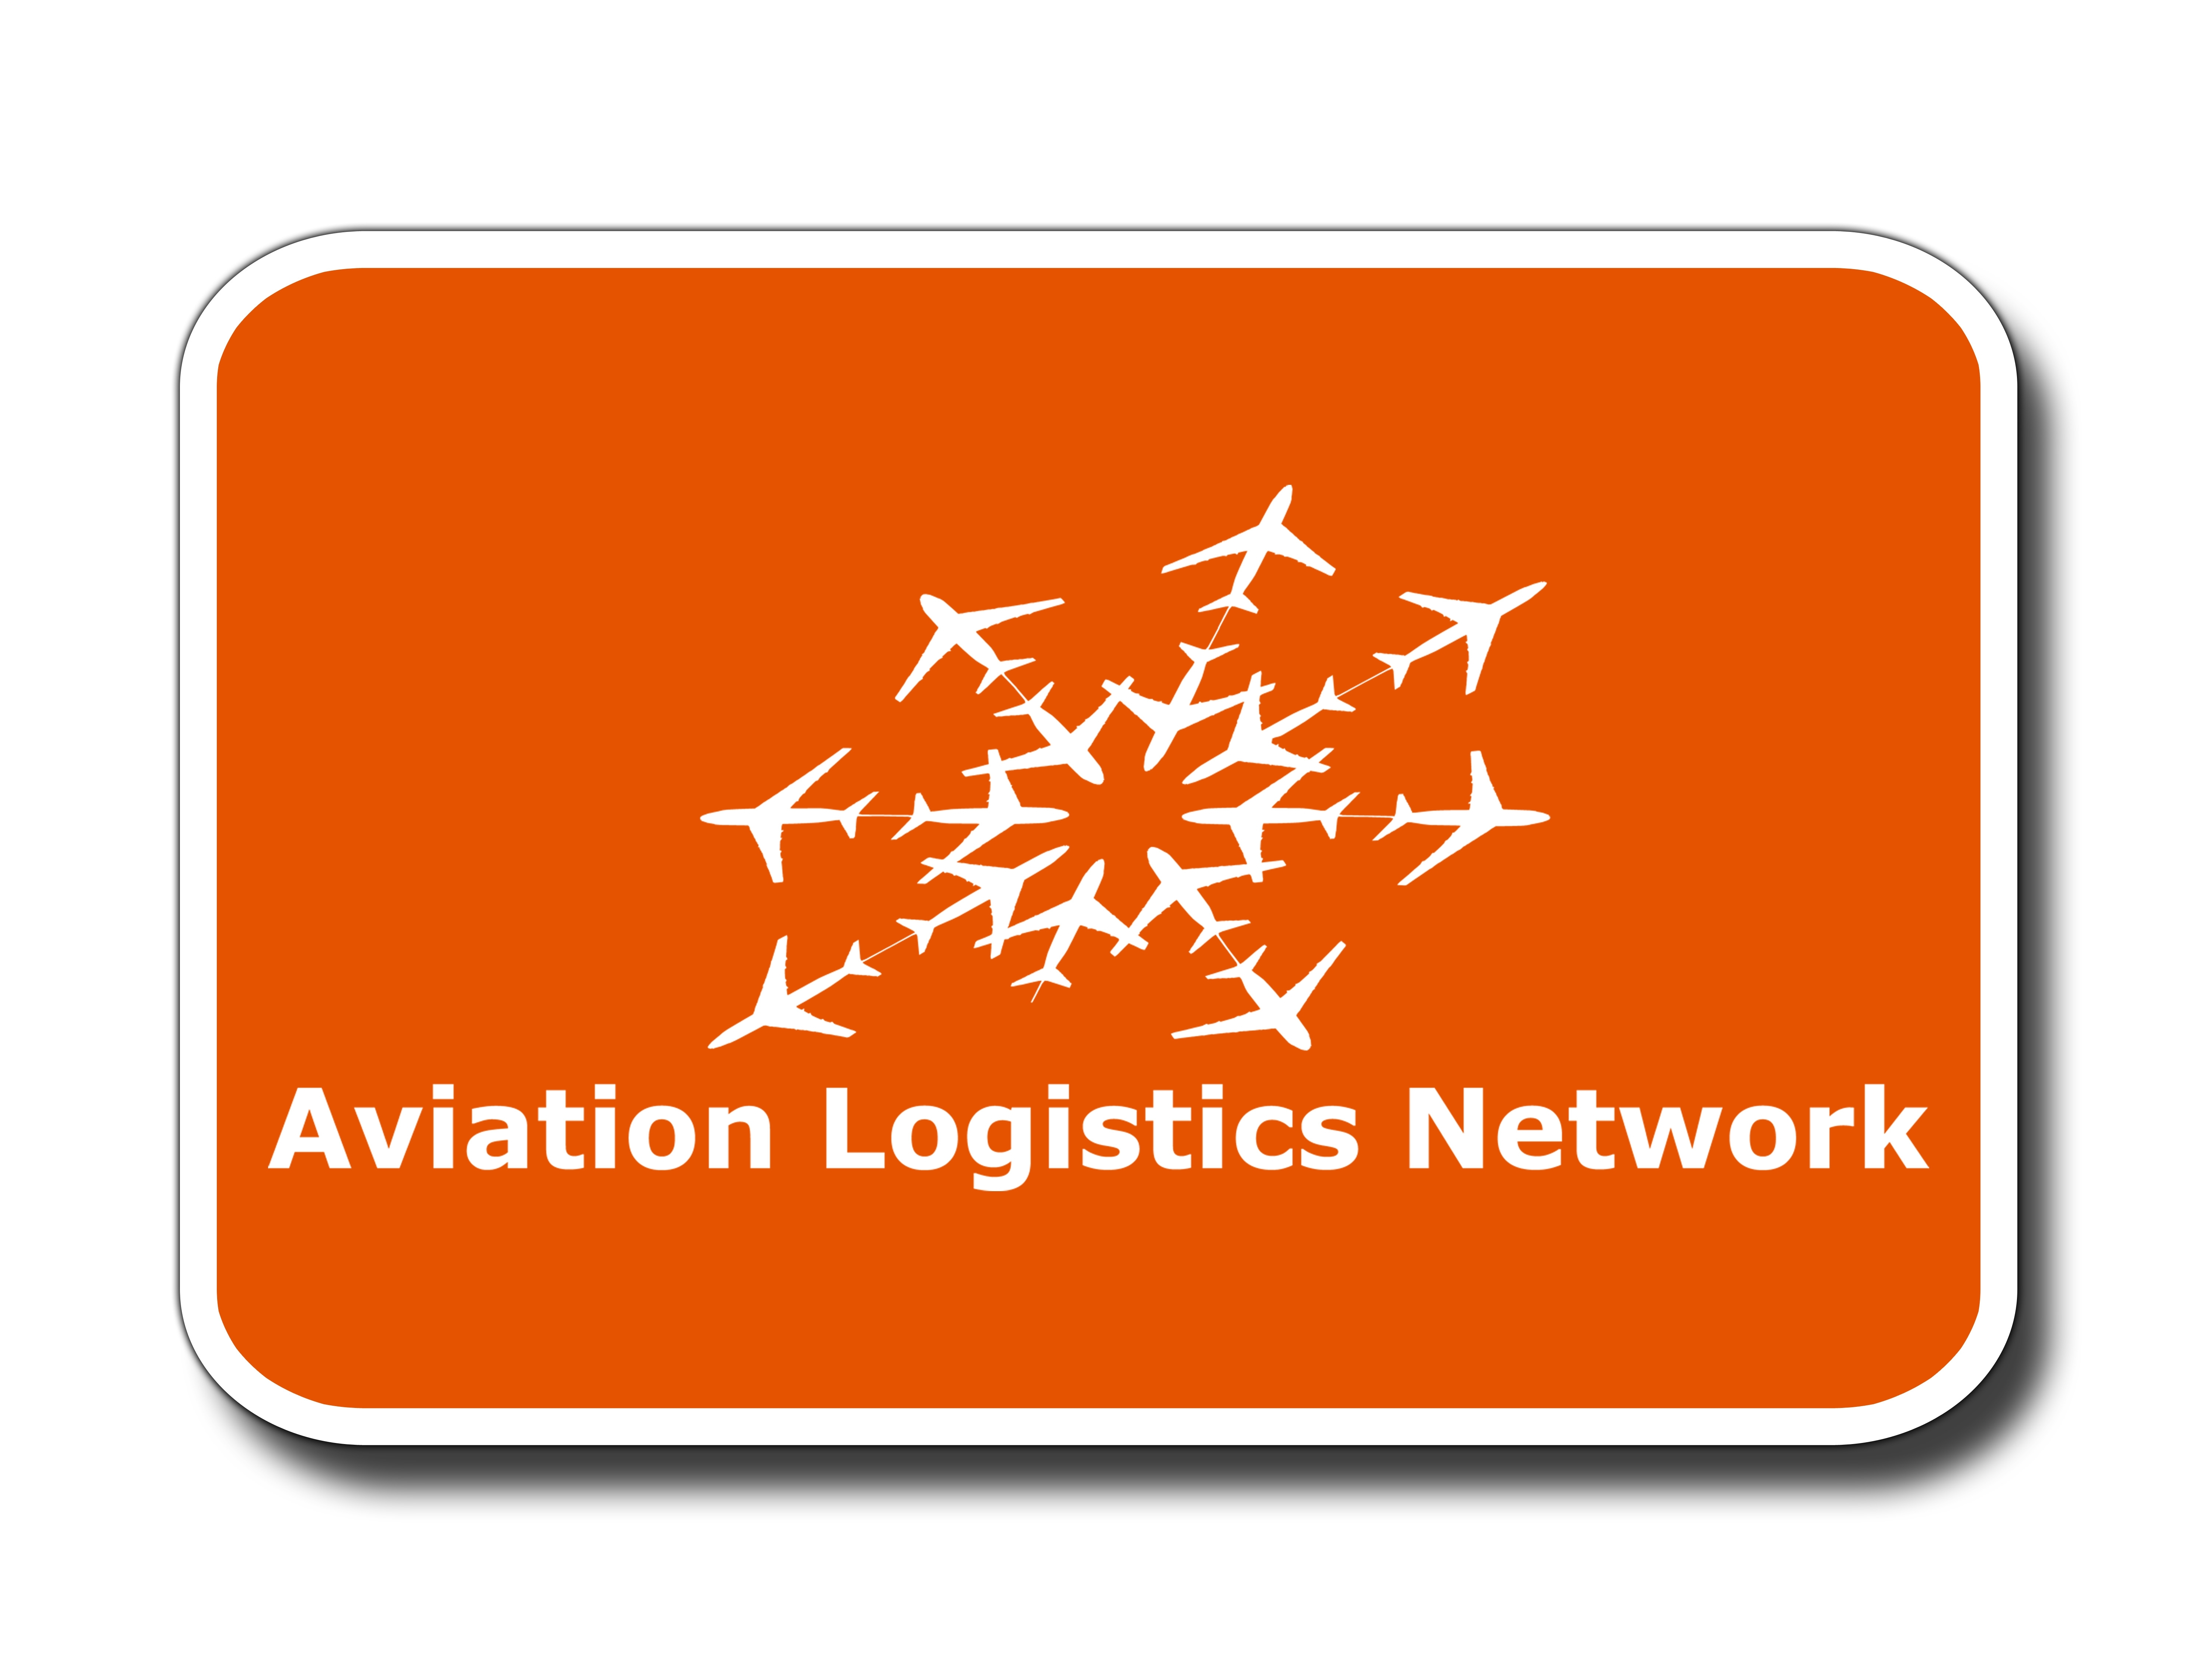 Aviation Logistics Network